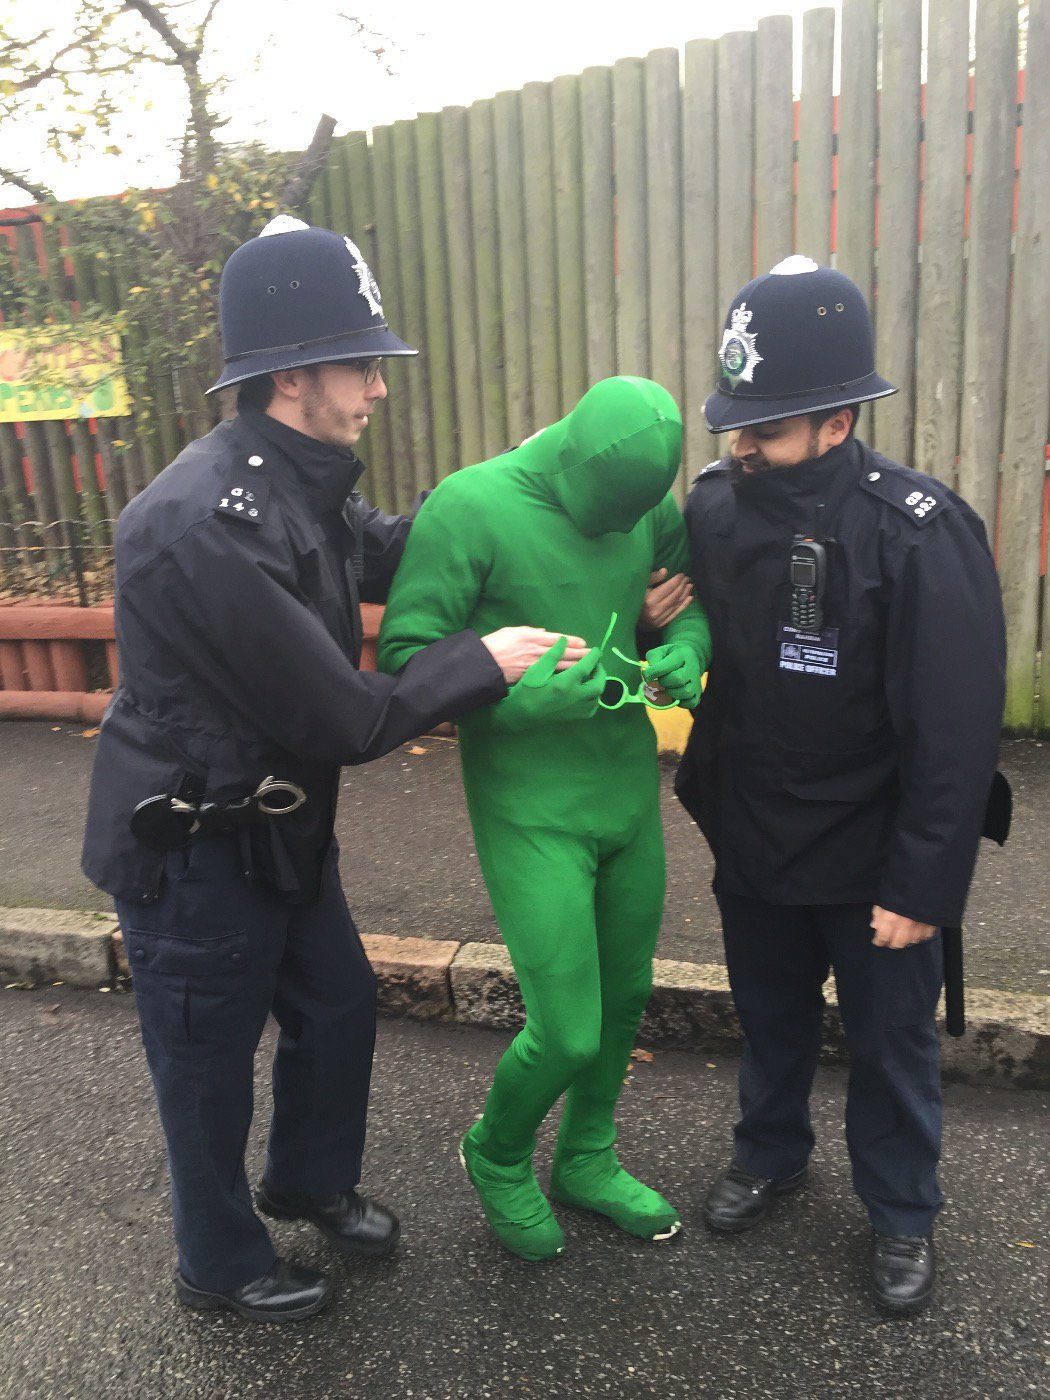 RT @MPSHackney: Shoreditch officers bring stories to life for local kids @Randalcremer primary school https://t.co/QWXanZ88IB